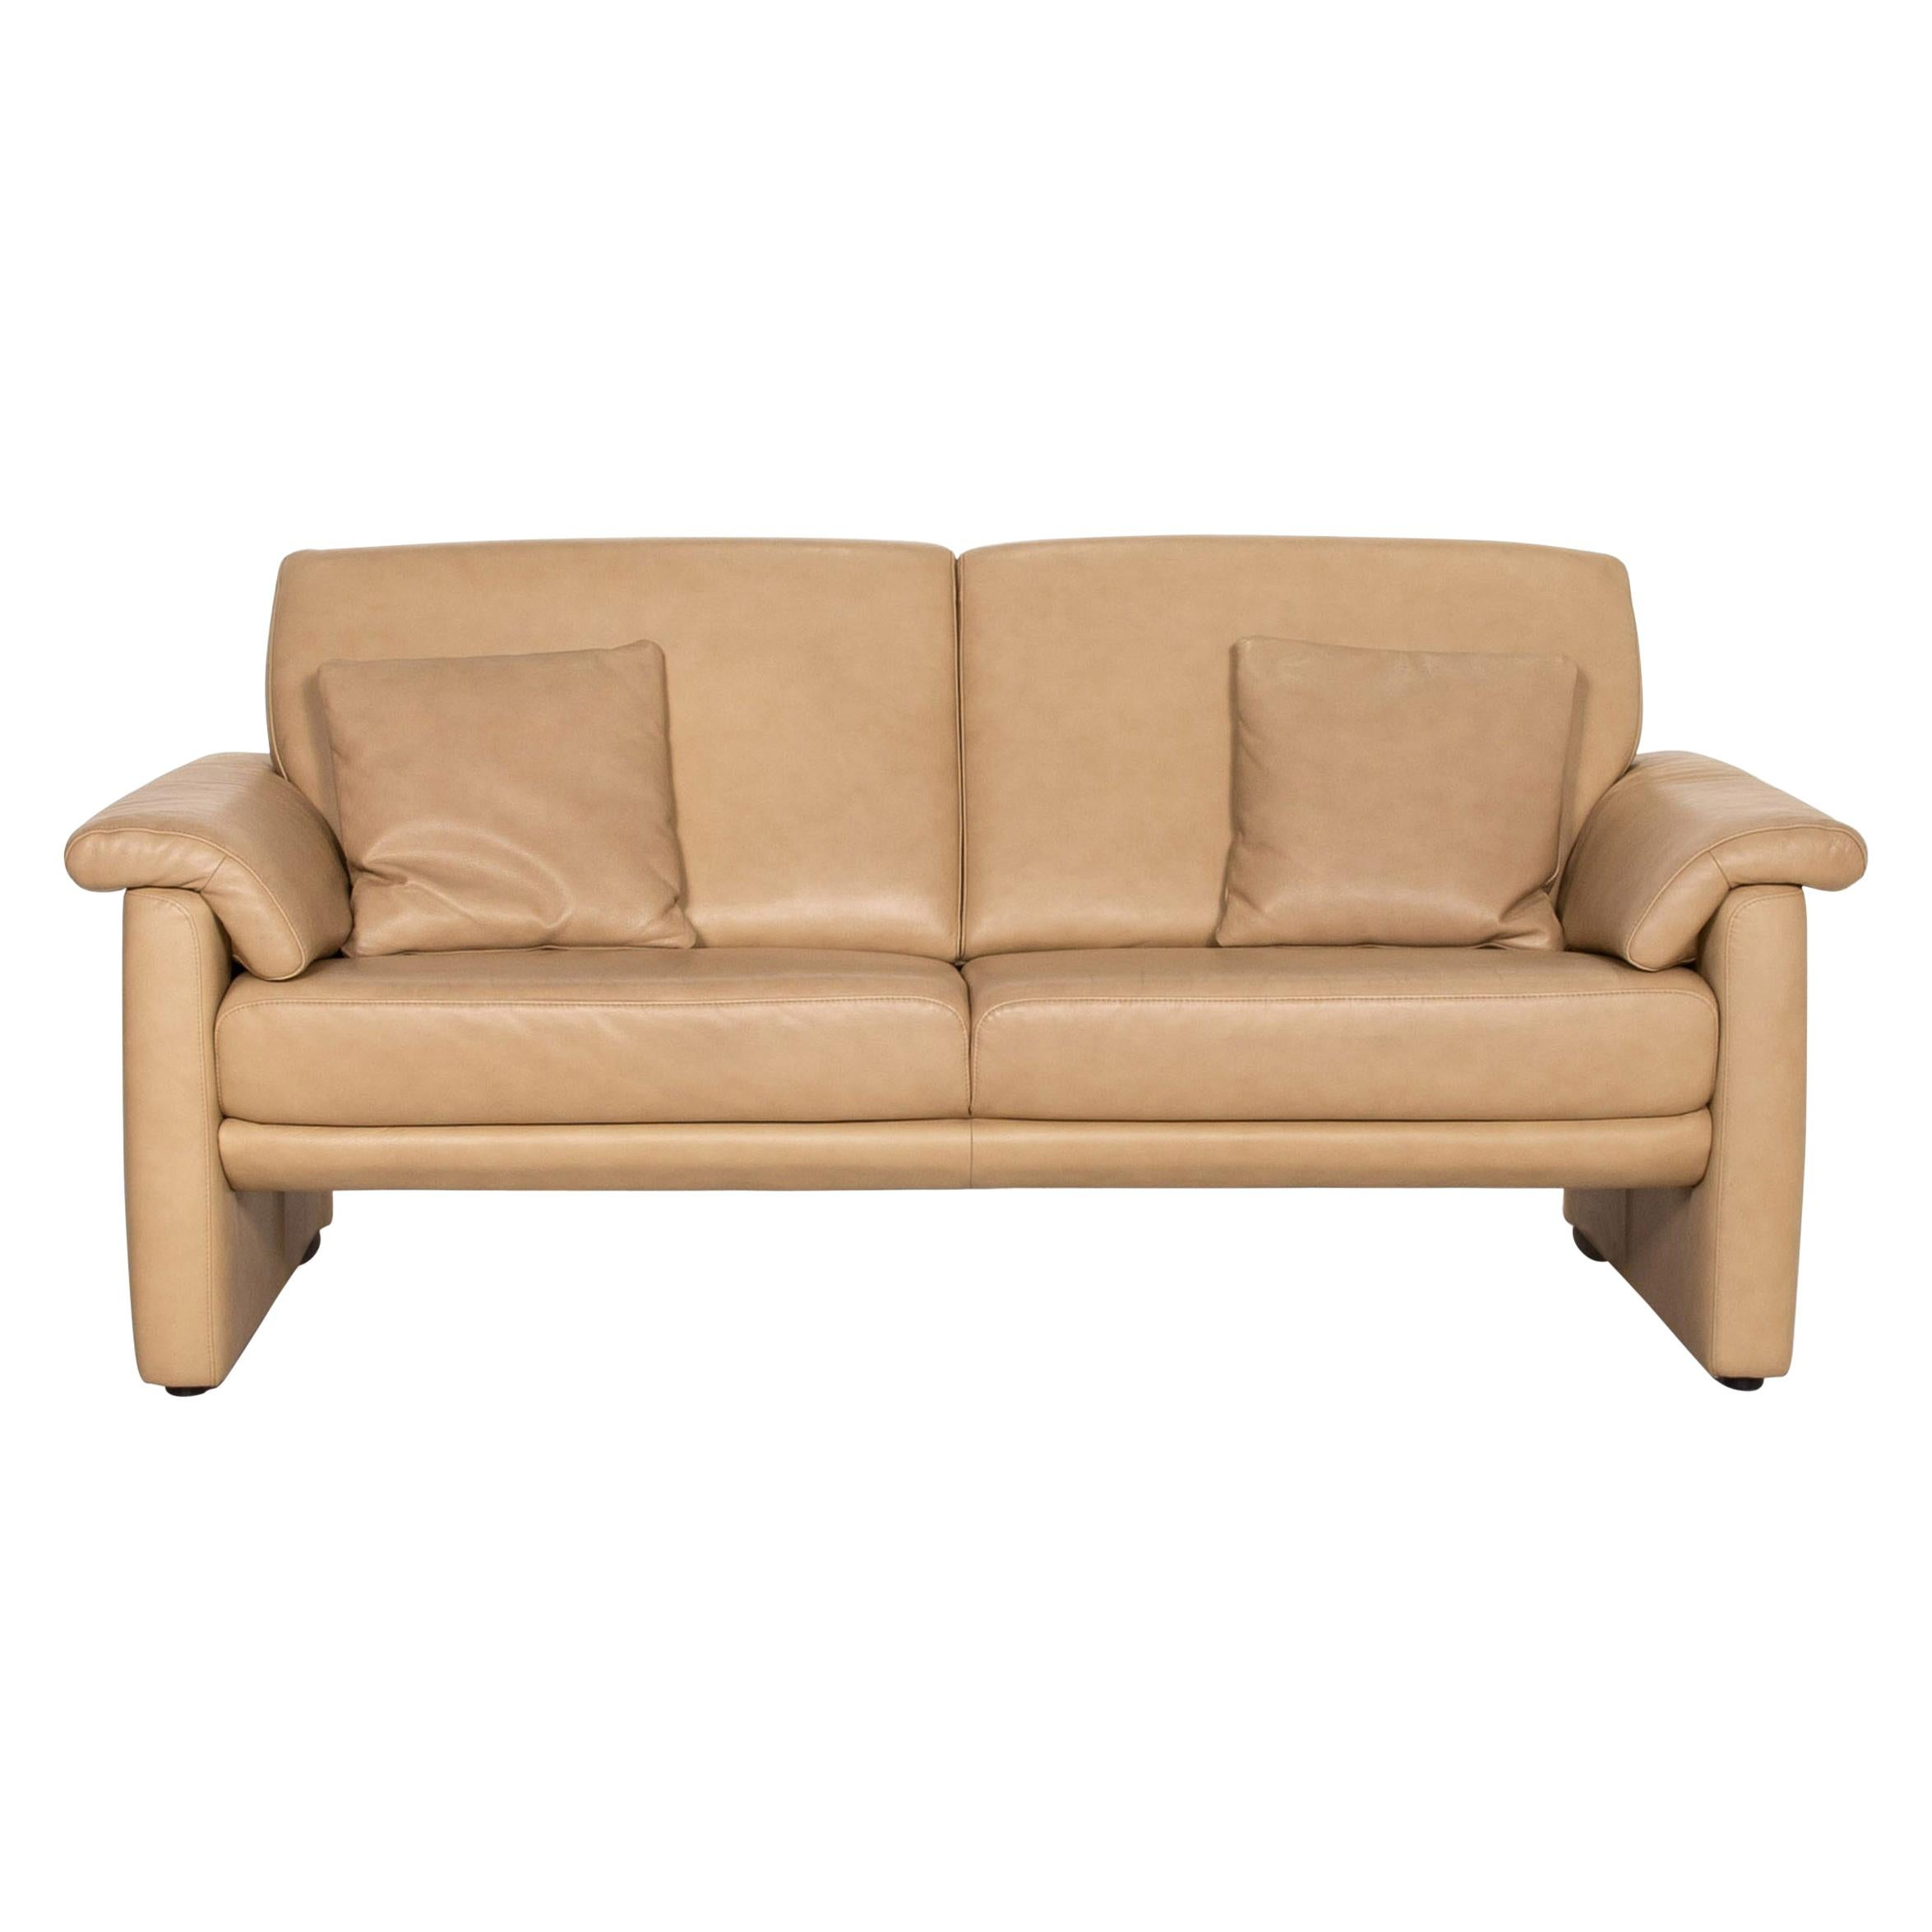 Willi Schillig Lucca Leather Sofa Beige Two-Seat Couch